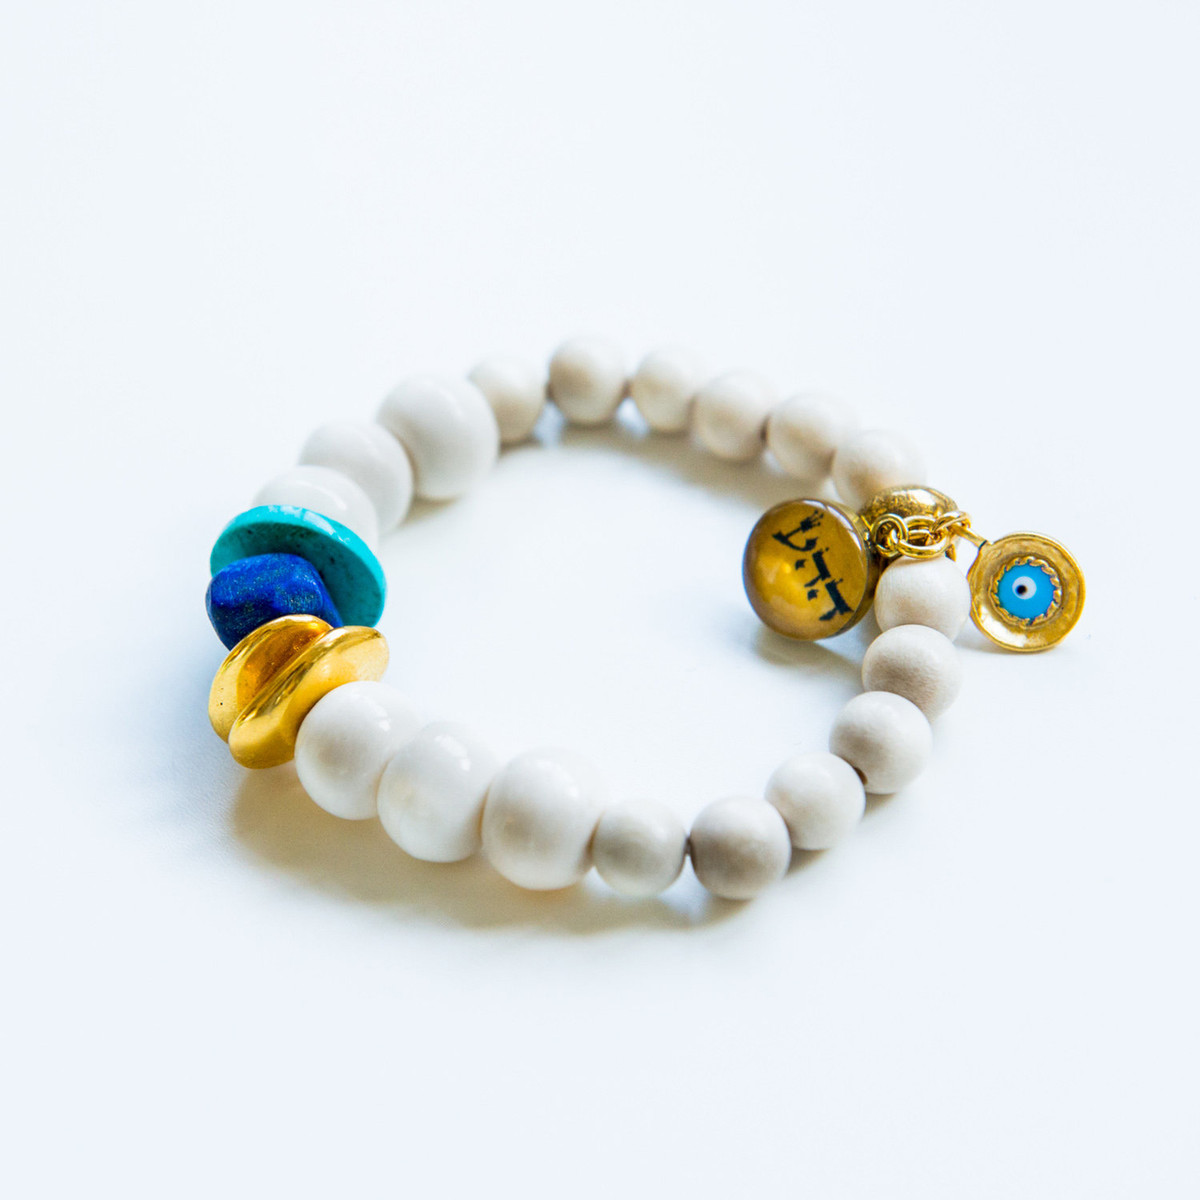 7Stitches Kabbalah Protection with Lapis and Gold Chips Bracelet